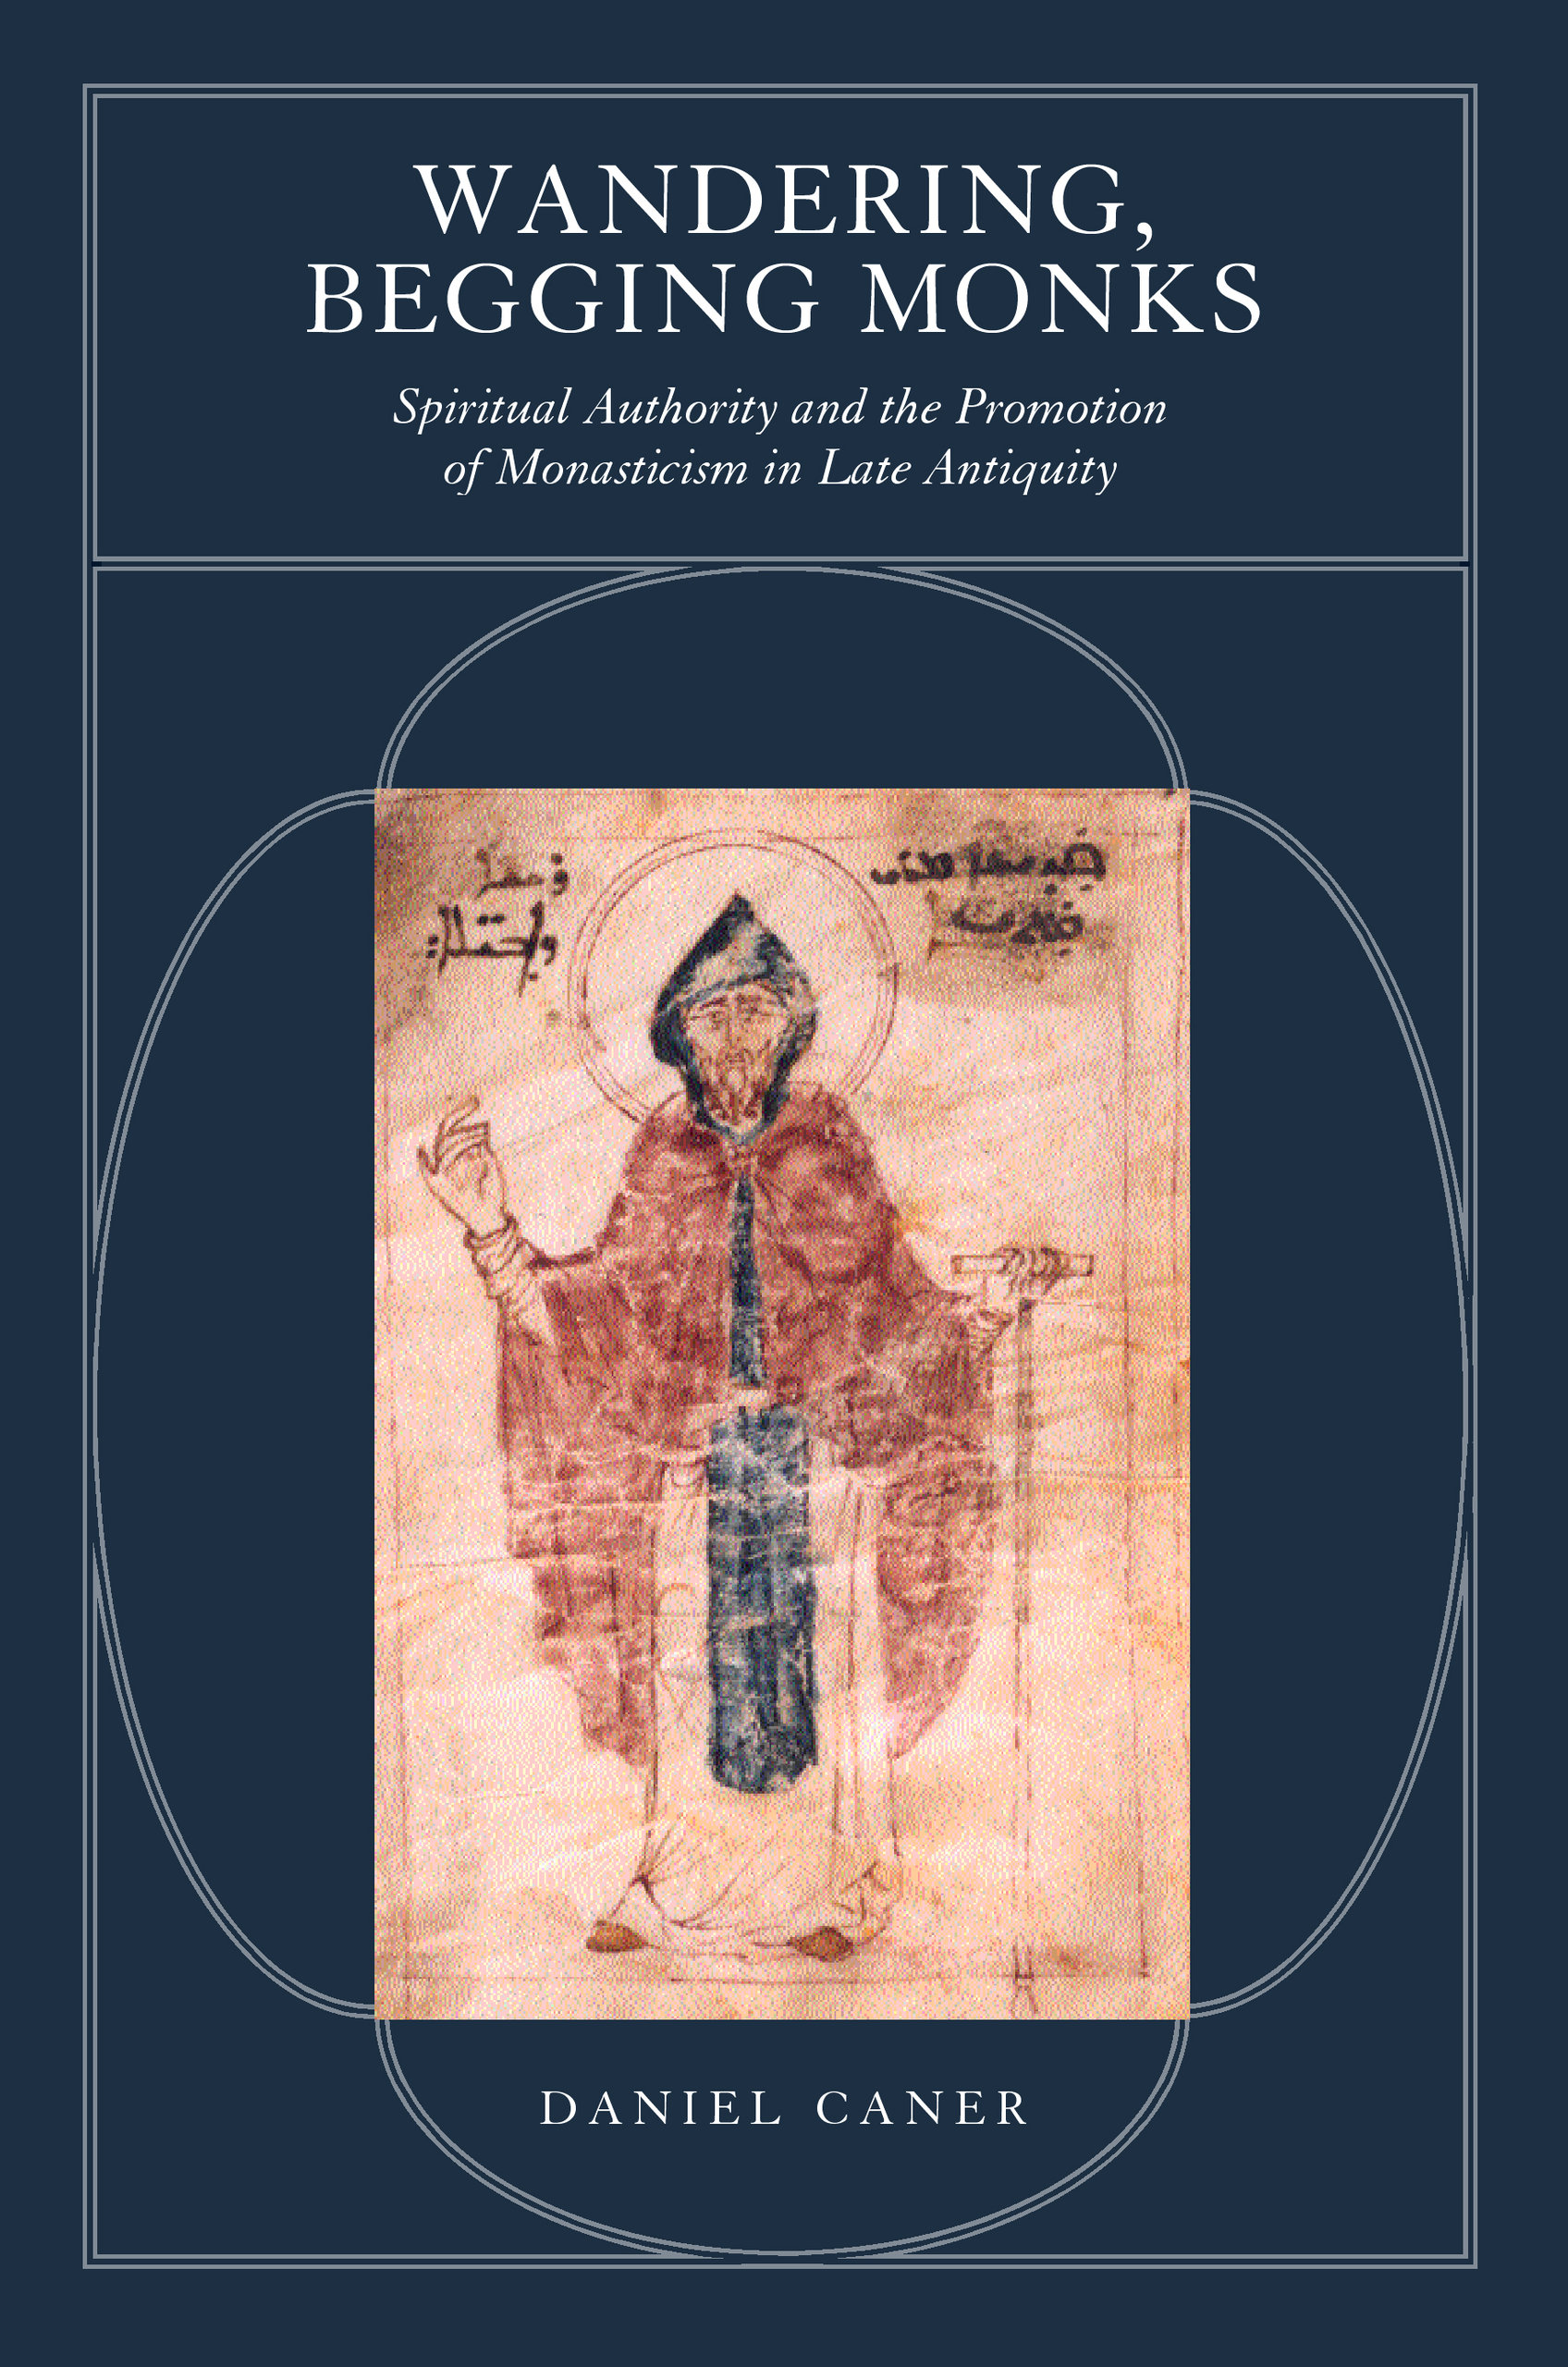 introduction of monasticism